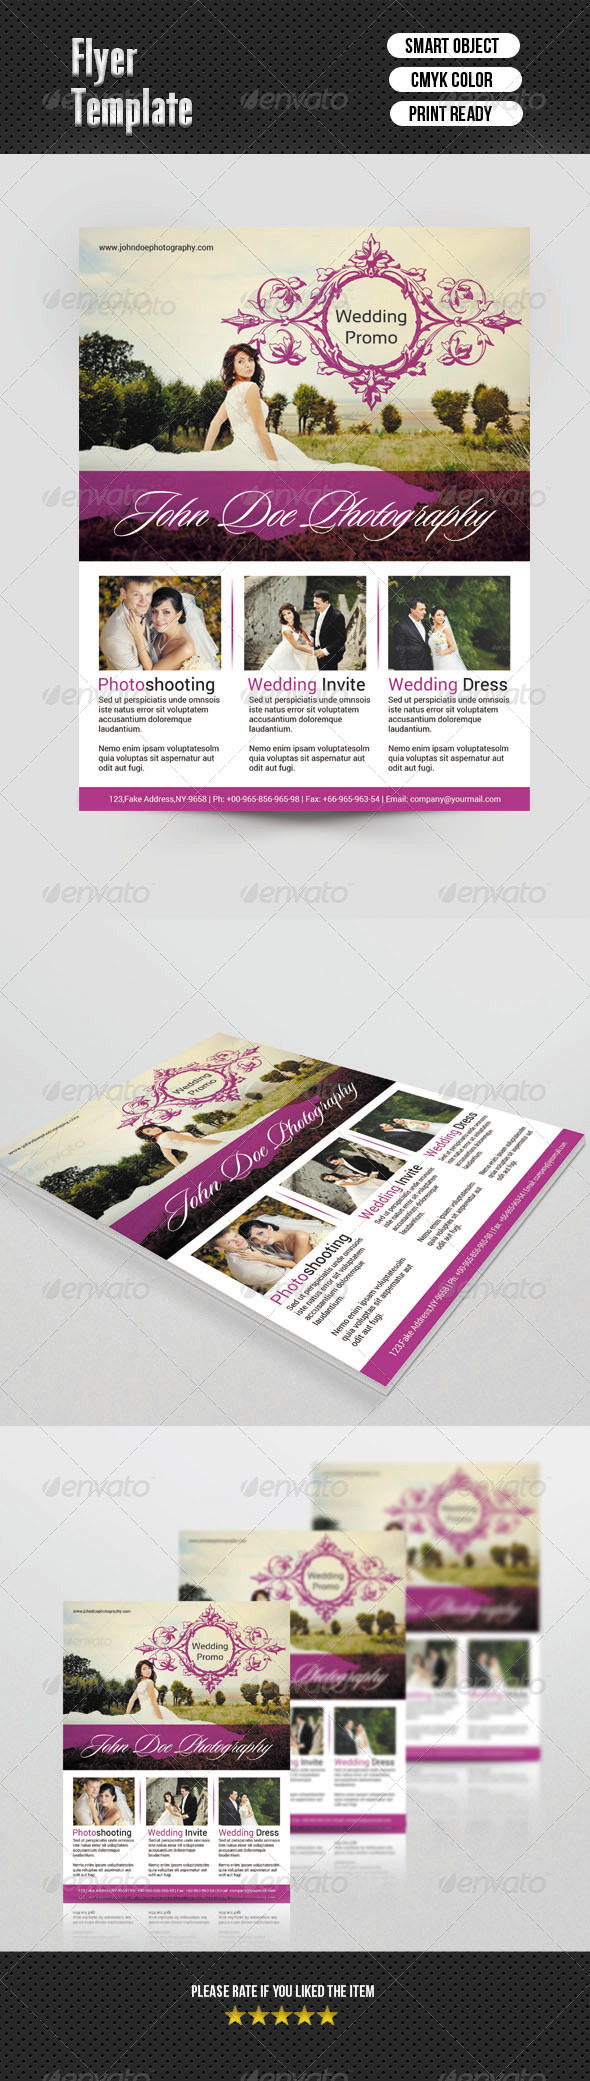 GraphicRiver Wedding Photography Flyer 6891487